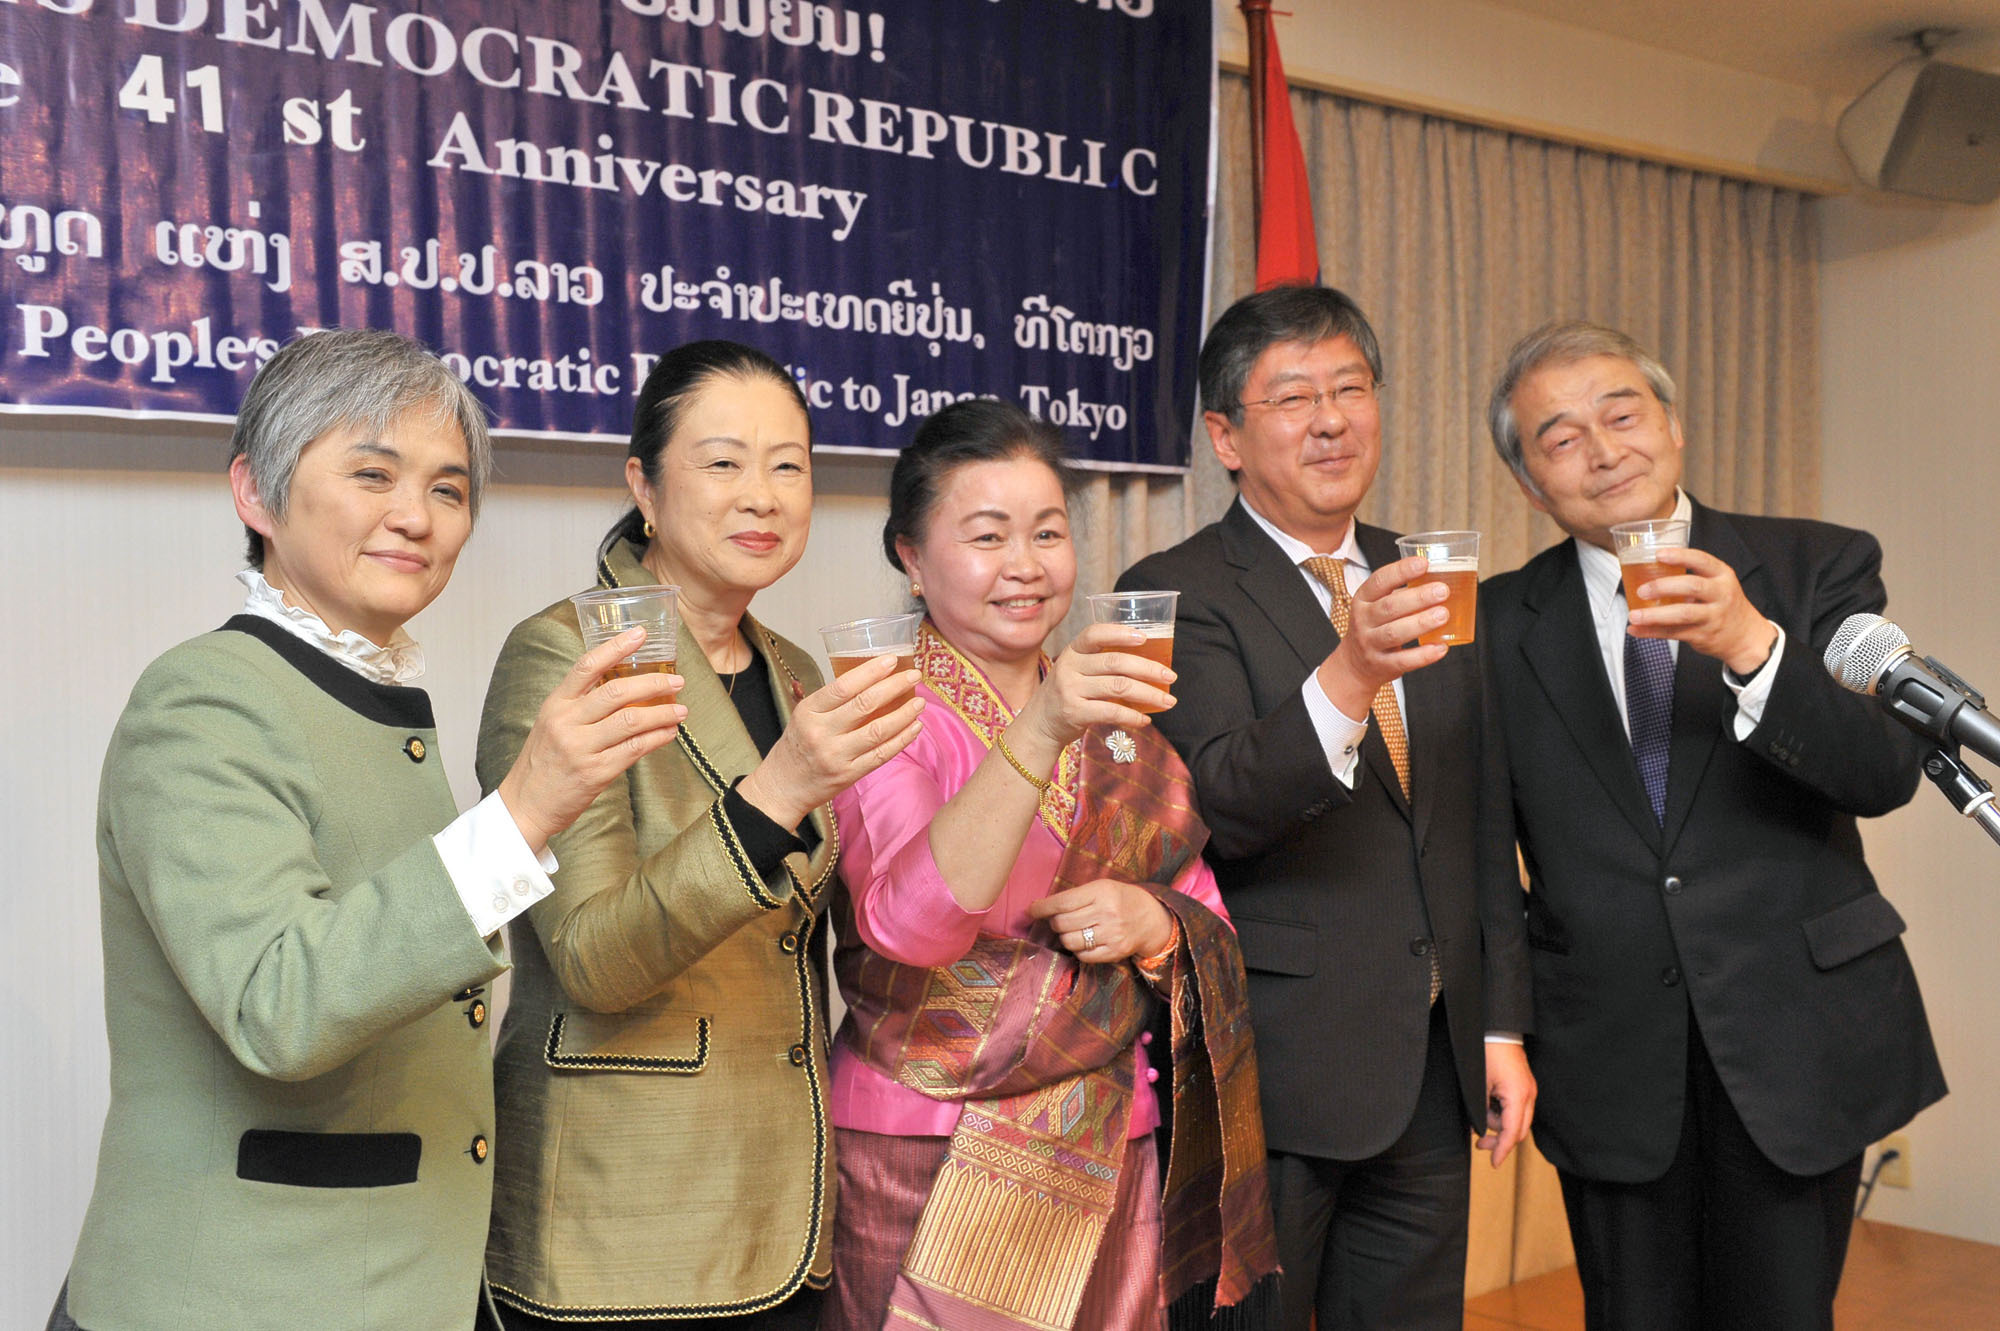 Somsanouk Vongsack (center), charge d'Affaires a.i. of Laos raises her glass with (from left) Takako Ito, assistant chief of protocol, director of the Ministry of Foreign Affairs Protocol Office; Shinako Tsuchiya, chairman of the Japan-Laos Parliamentary Friendship League; Kazuya Nashida, director general of the Ministry of Foreign Affairs Southeast and Southwest Asia Affairs Department; and Itsuo Hashimoto, Japan-Laos Association president, during a reception celebrating the 41st national day anniversary of the Lao People's Democratic Republic at the embassy in Tokyo on Dec. 4. | YOSHIAKI MIURA